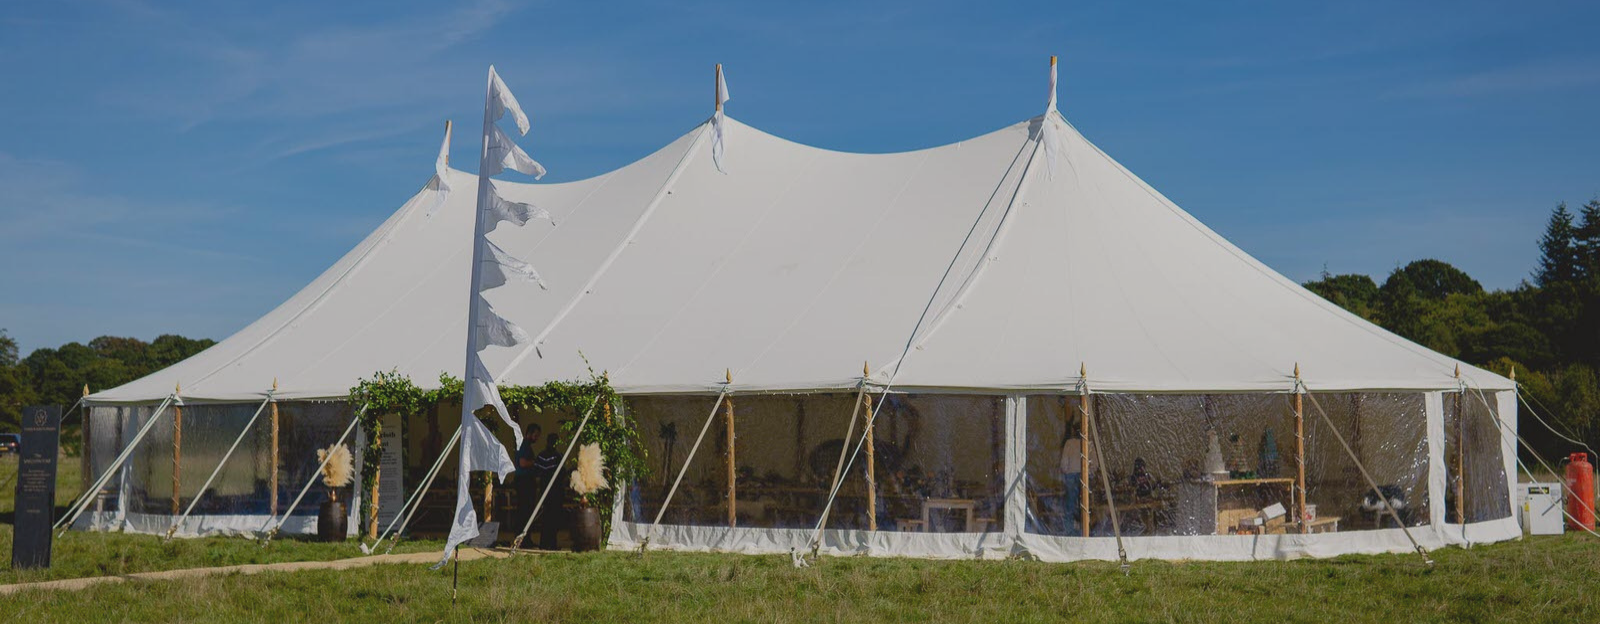 All About The Sailcloth Marquee